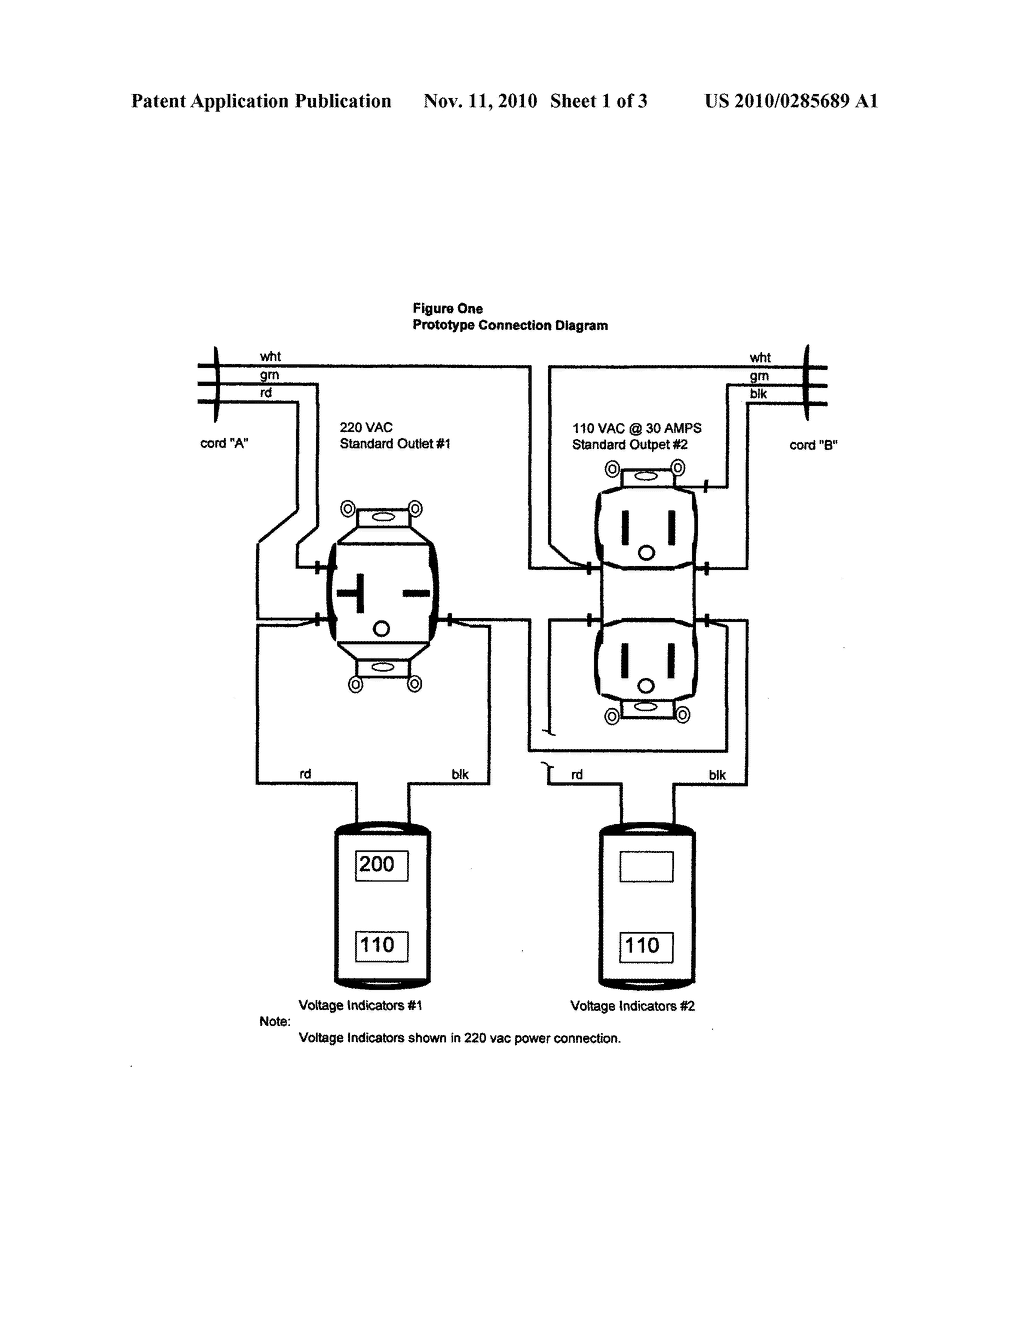 Wiring Diagram 110 Best Site Wiring Harness